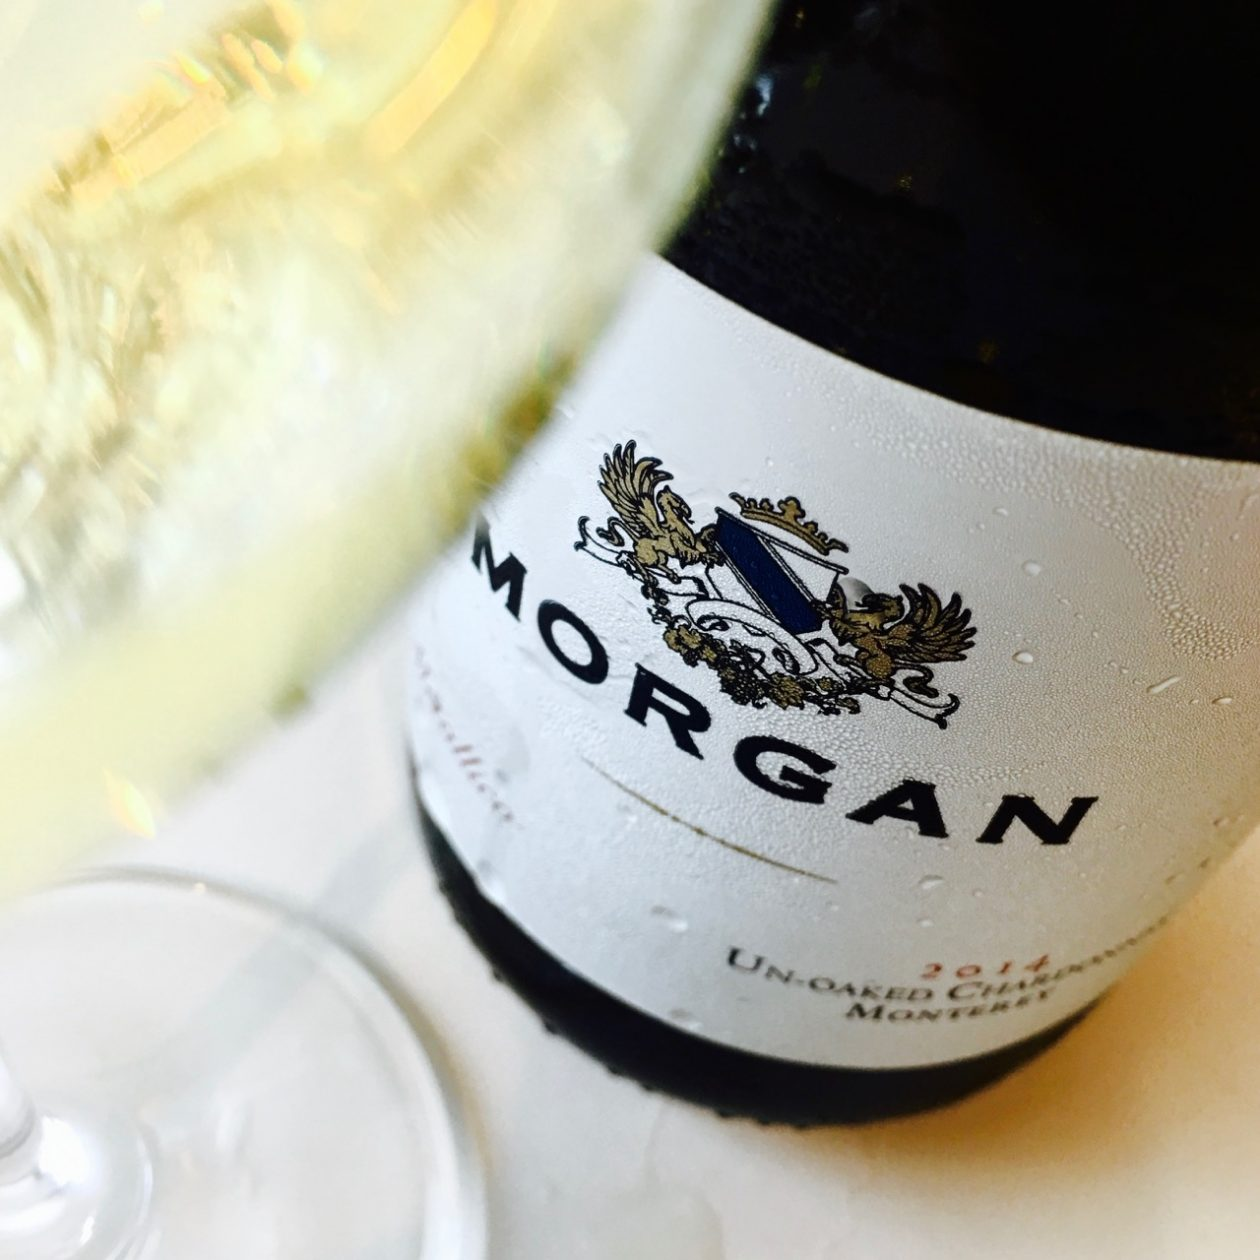 2014 Morgan Winery Chardonnay Metallico Monterey County